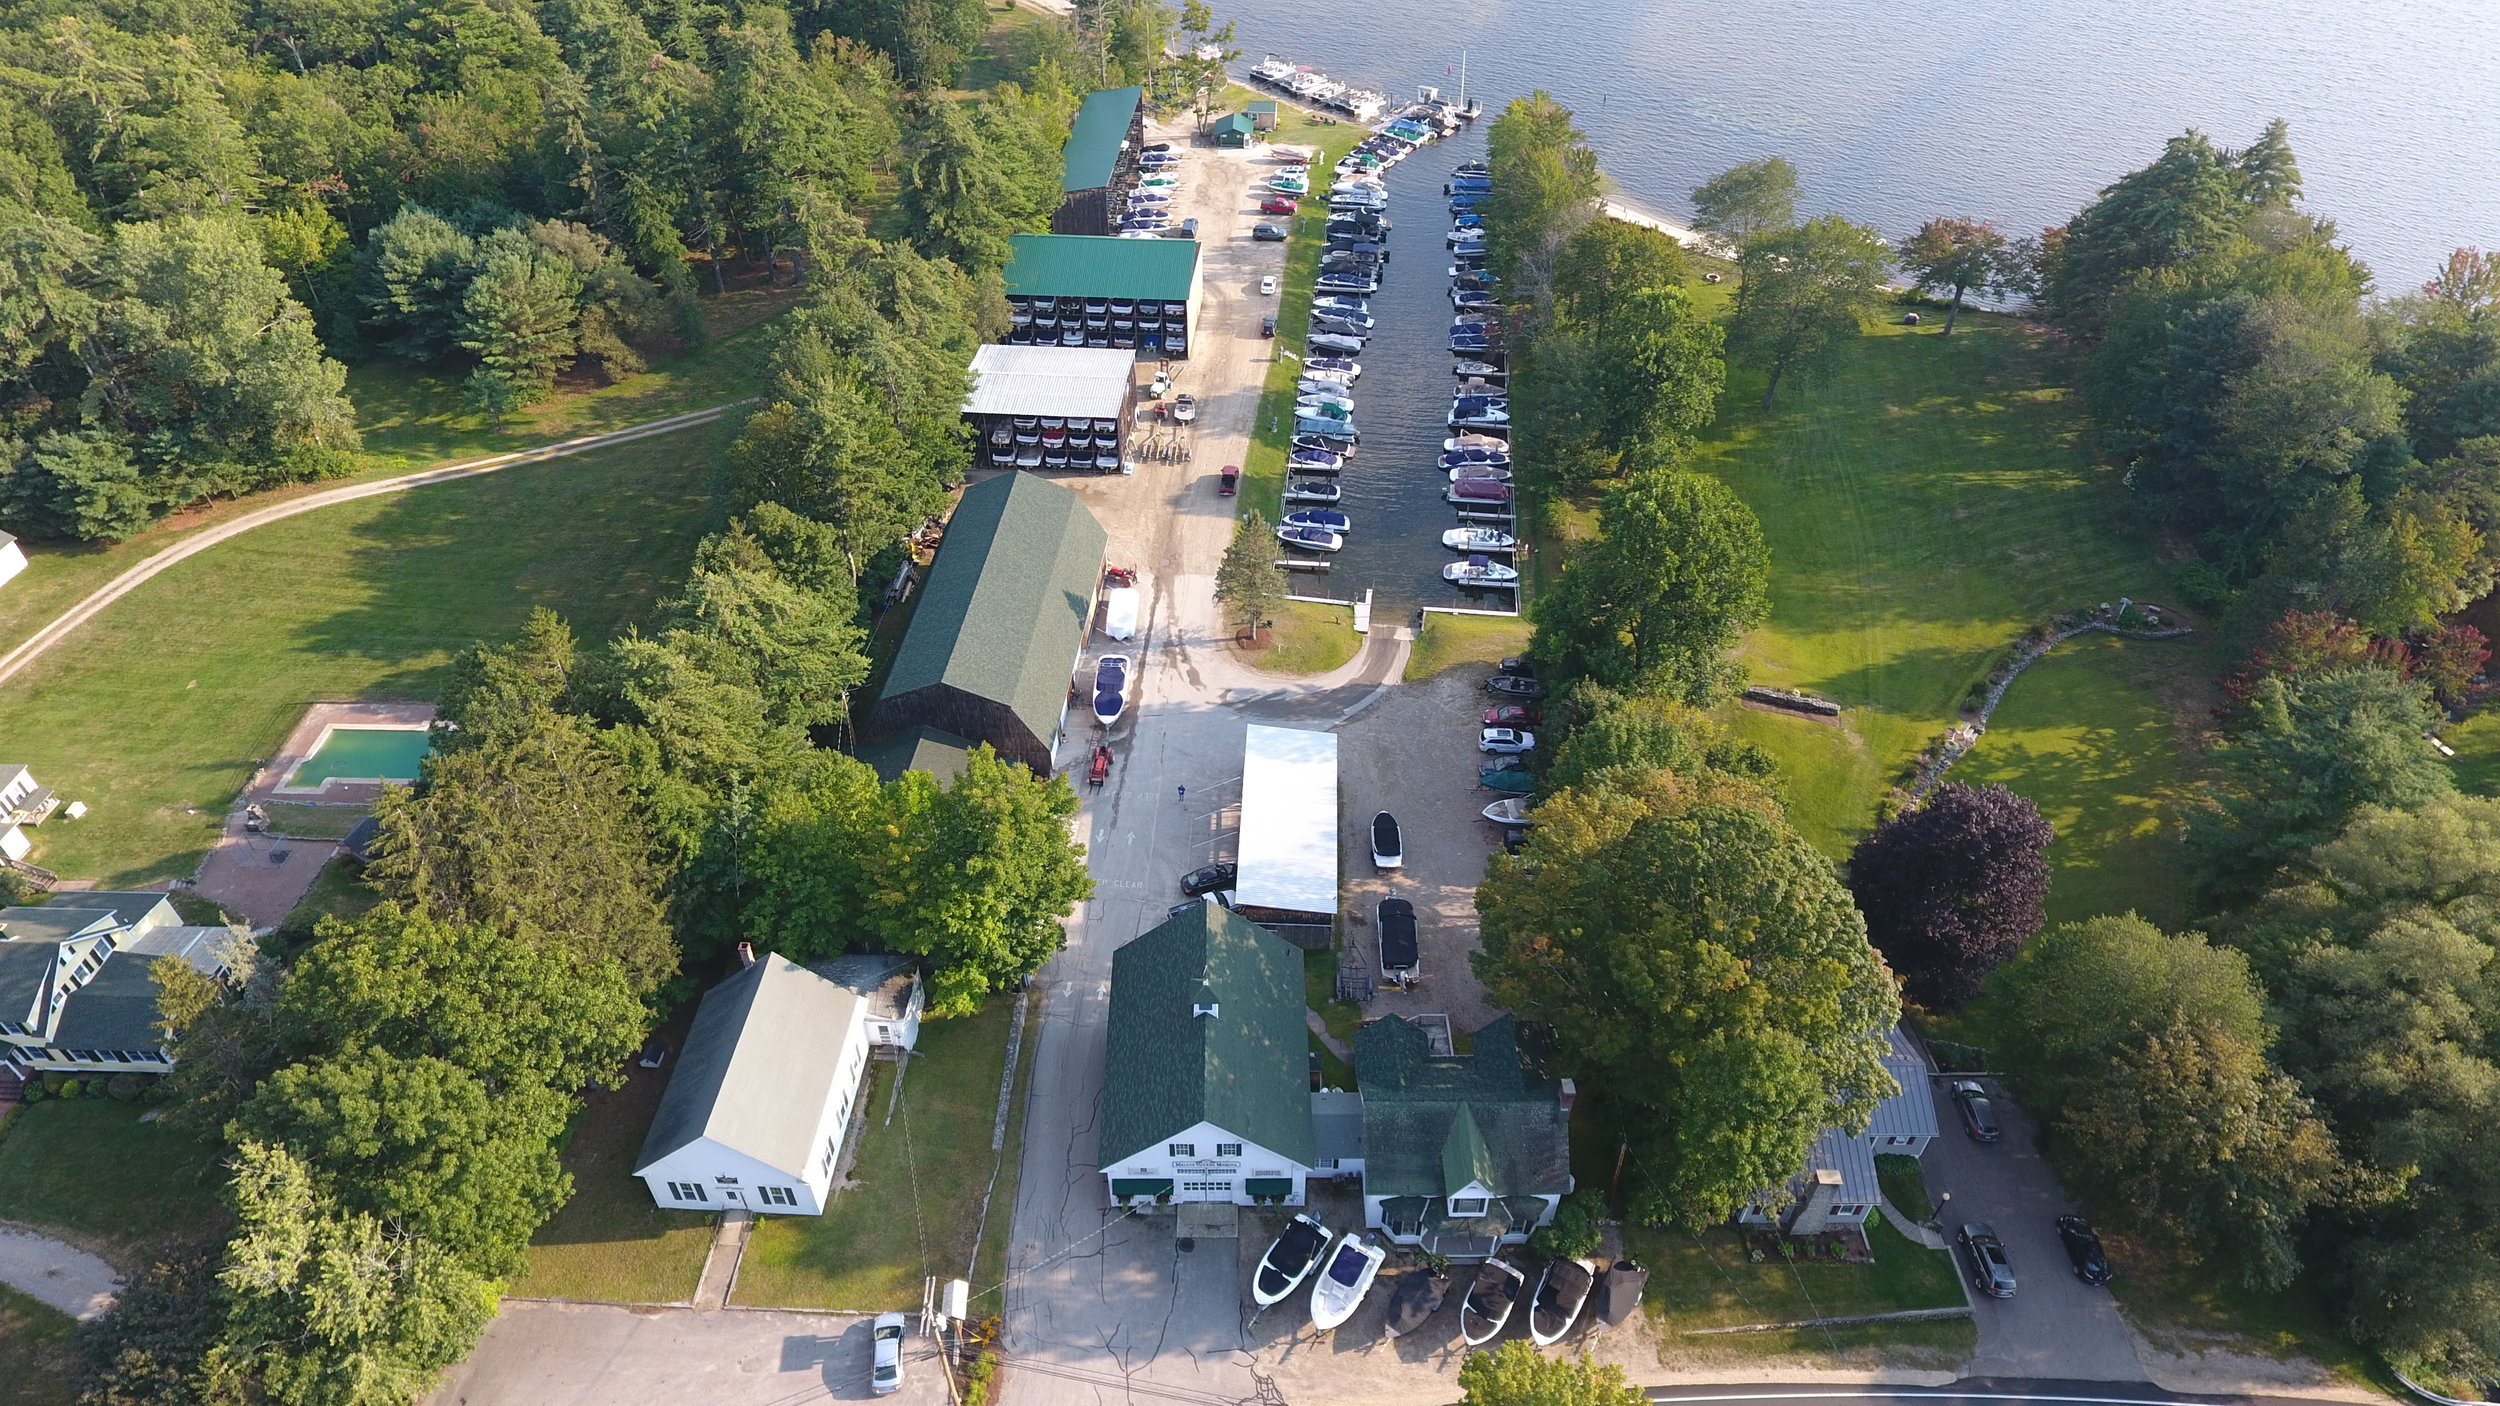 Melvin Village Marina from above